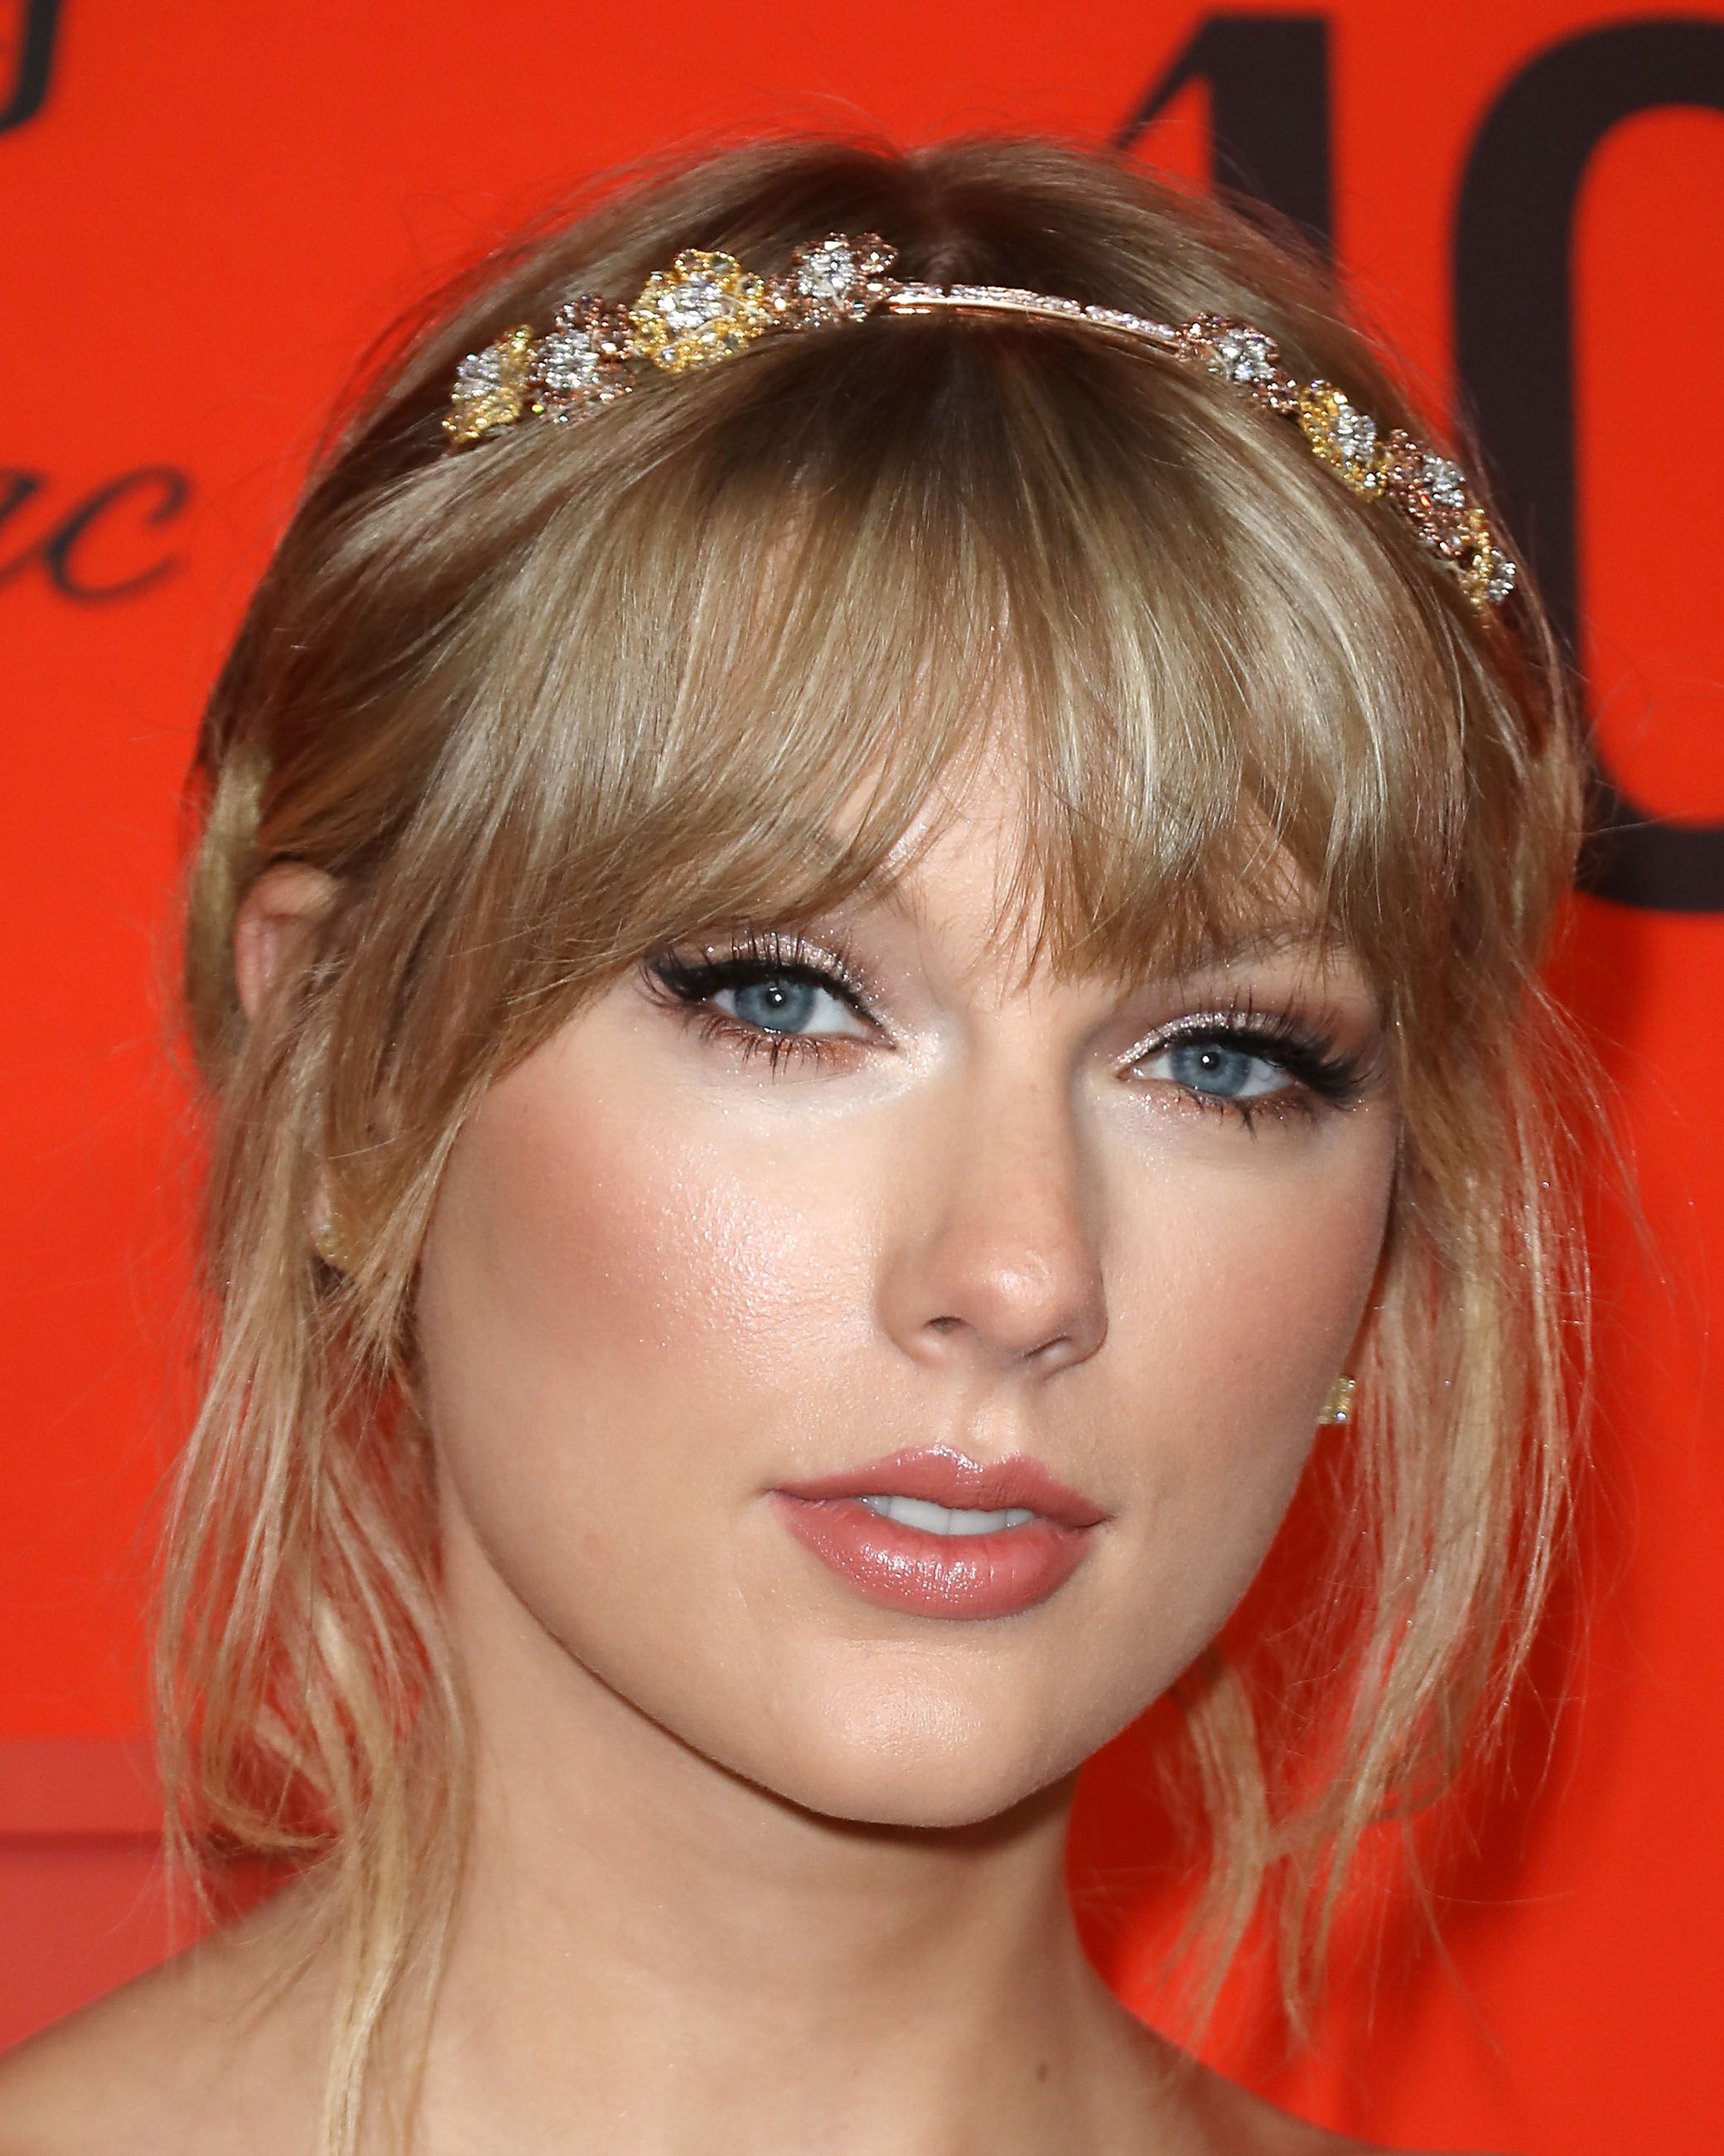 Every One Of Taylor Swift's Award-Winning Hair And Make-Up Looks